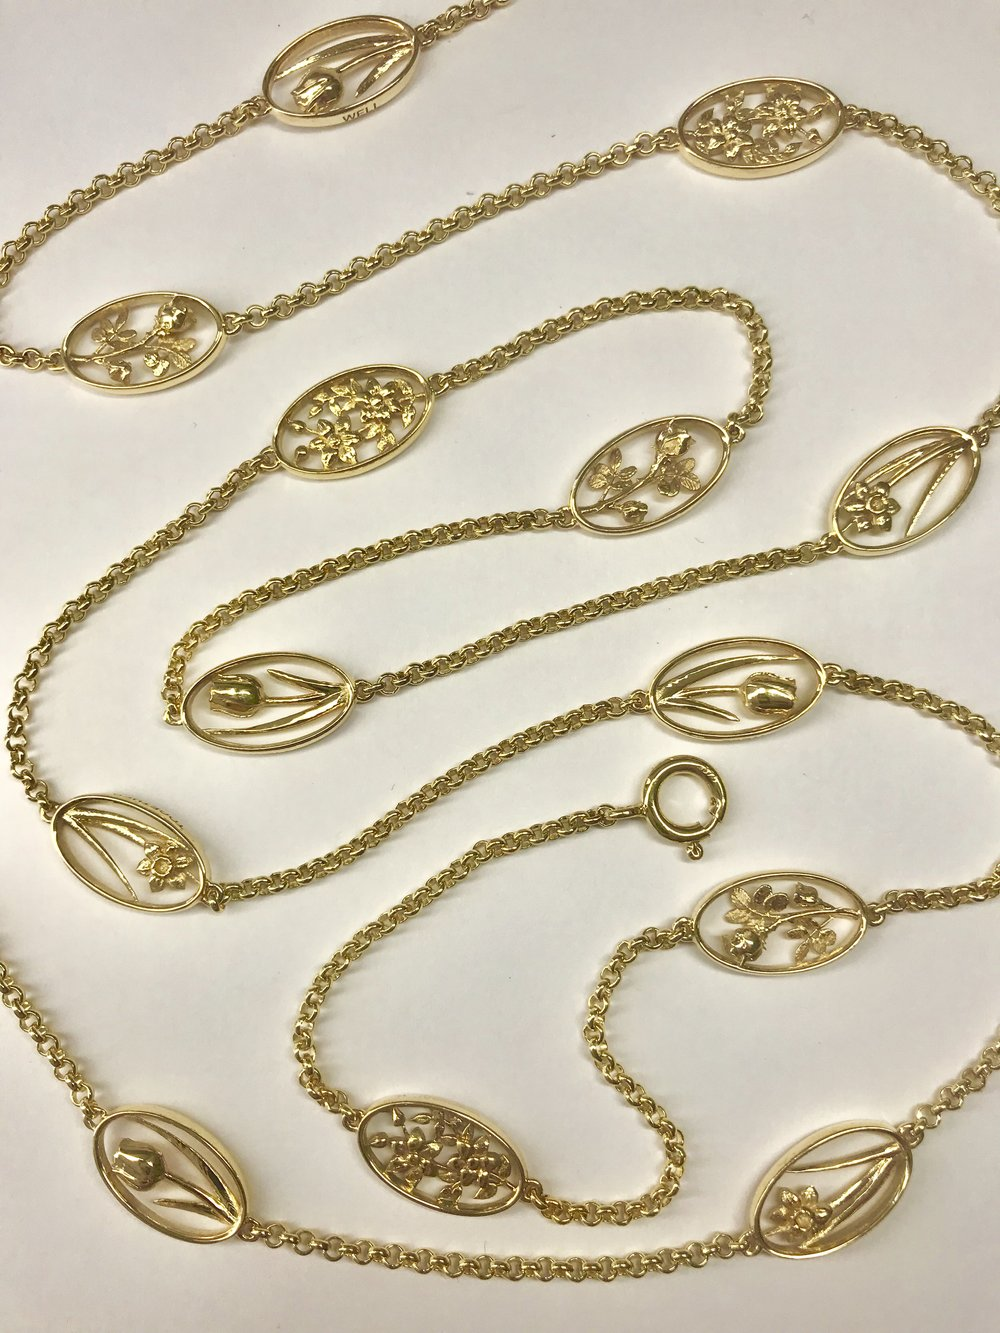 The finished necklace. This style of long necklace interspersed with design elements was very popular at the beginning of the C20th often with an Art Nouveau influence.